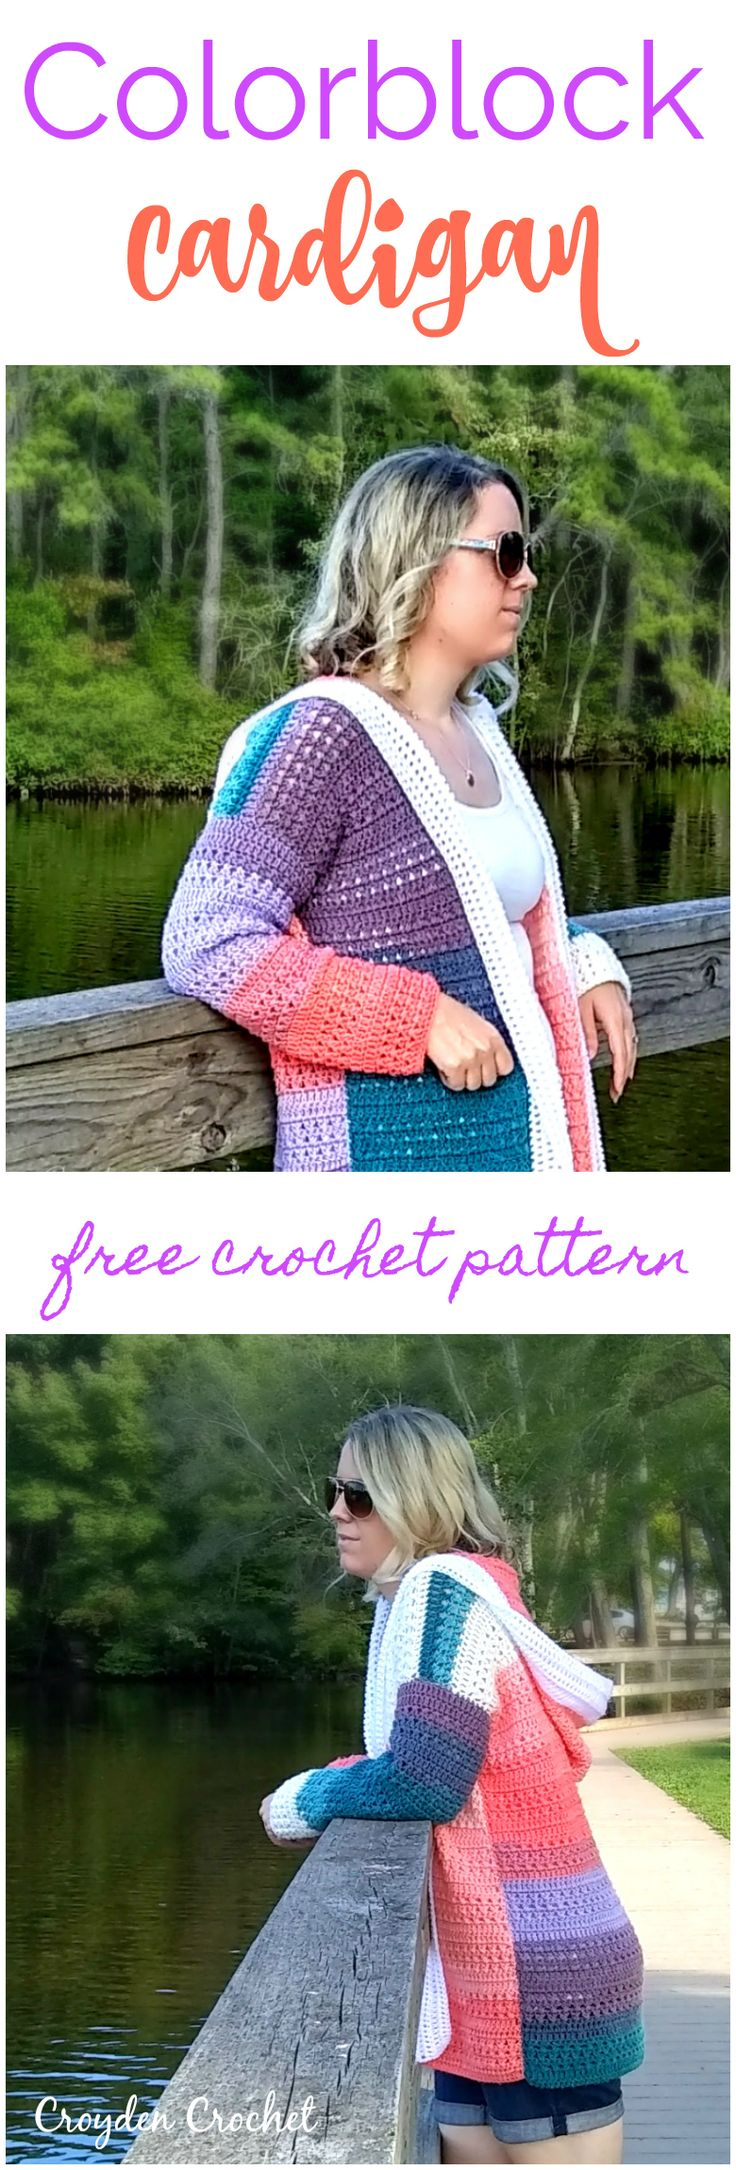 Crochet this free colorblock cardigan pattern using Lion Brand Mandala Yarn!